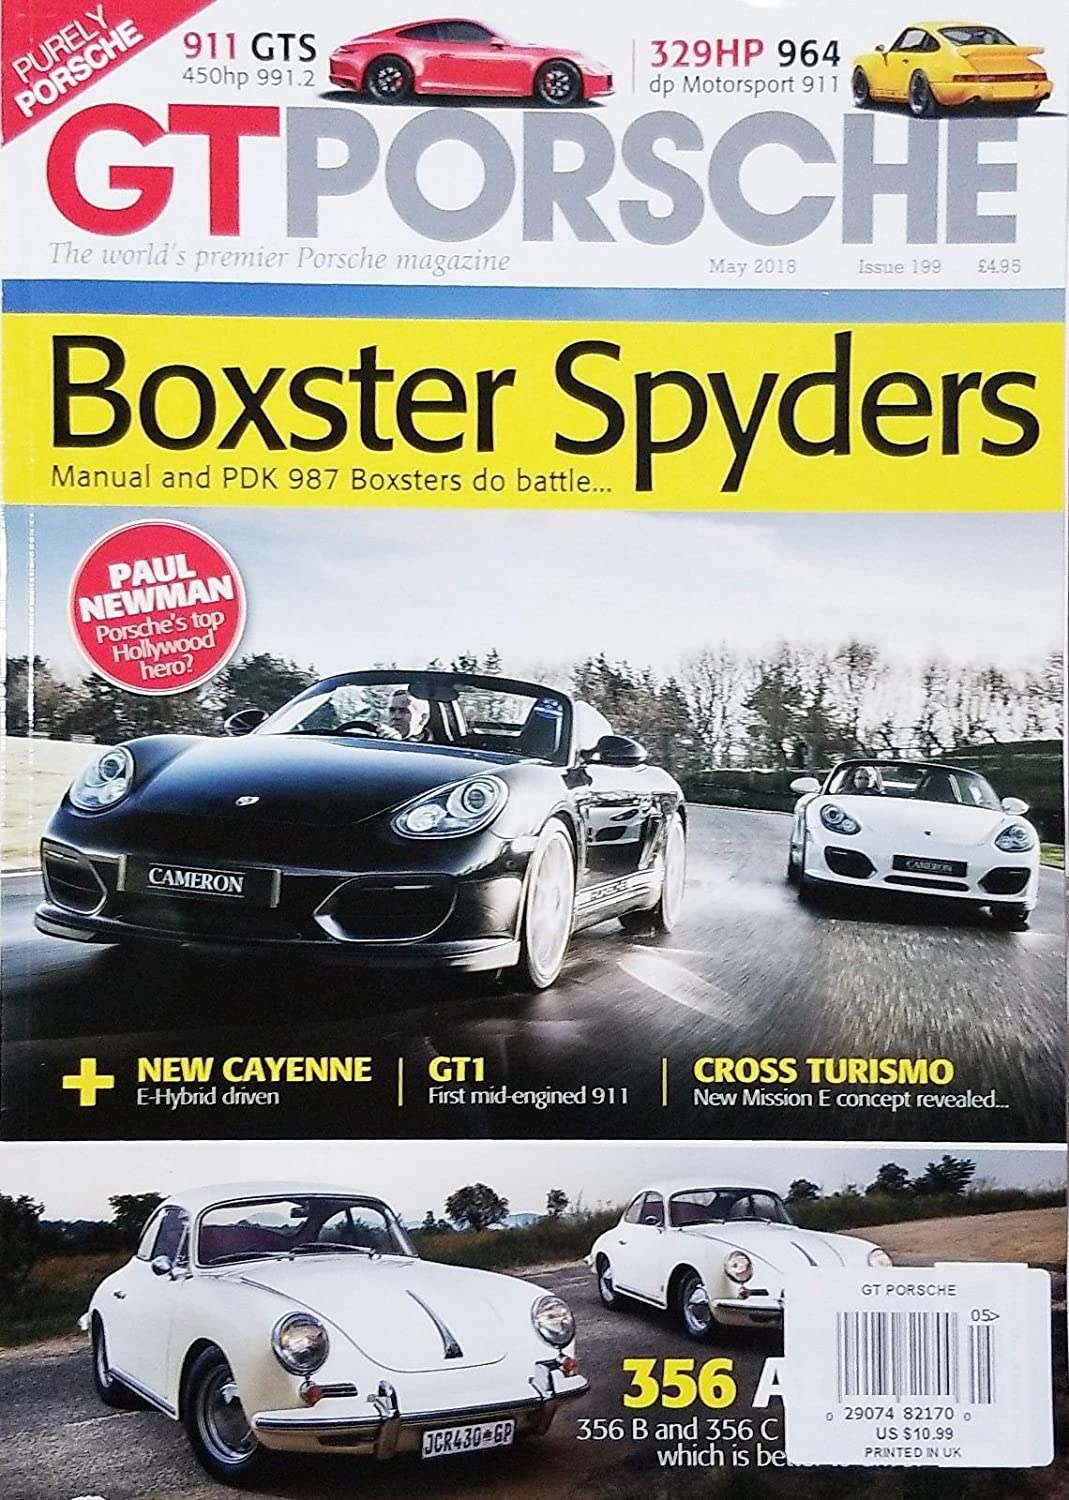 GT PORSCHE BOXSTER SPYDERS MAY 2018 ISSUE 199^ s3457